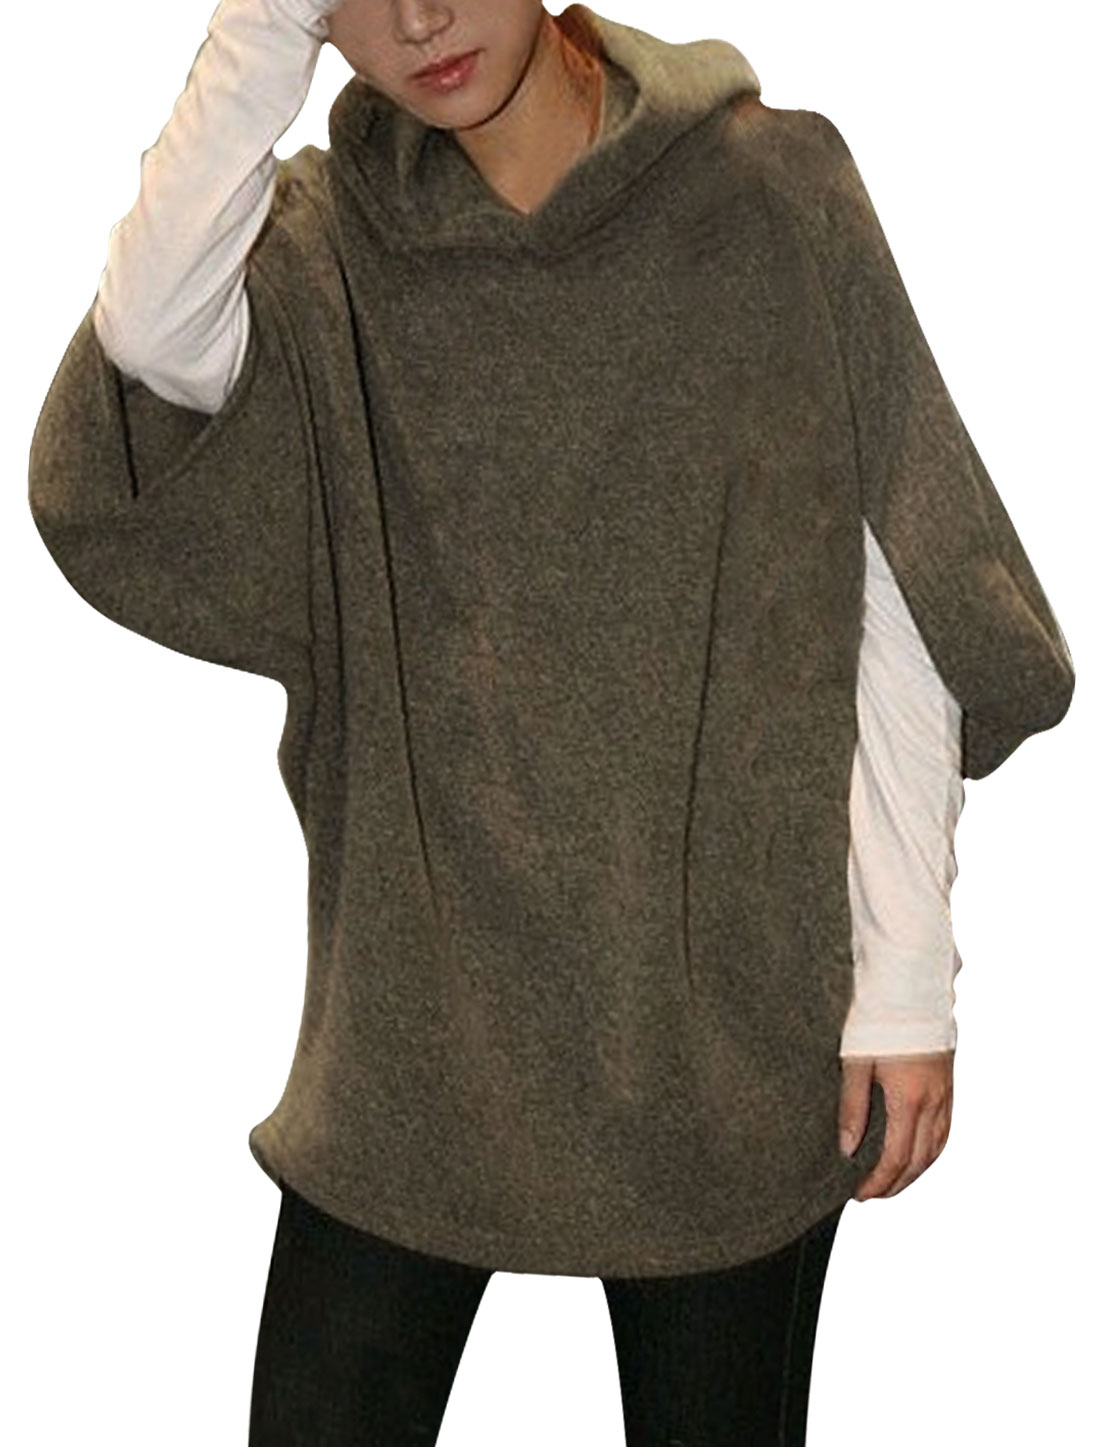 Ladies Coffee Color Loose Hoodie Stretchy Half Batwing Sleeve Casual Knit Top L